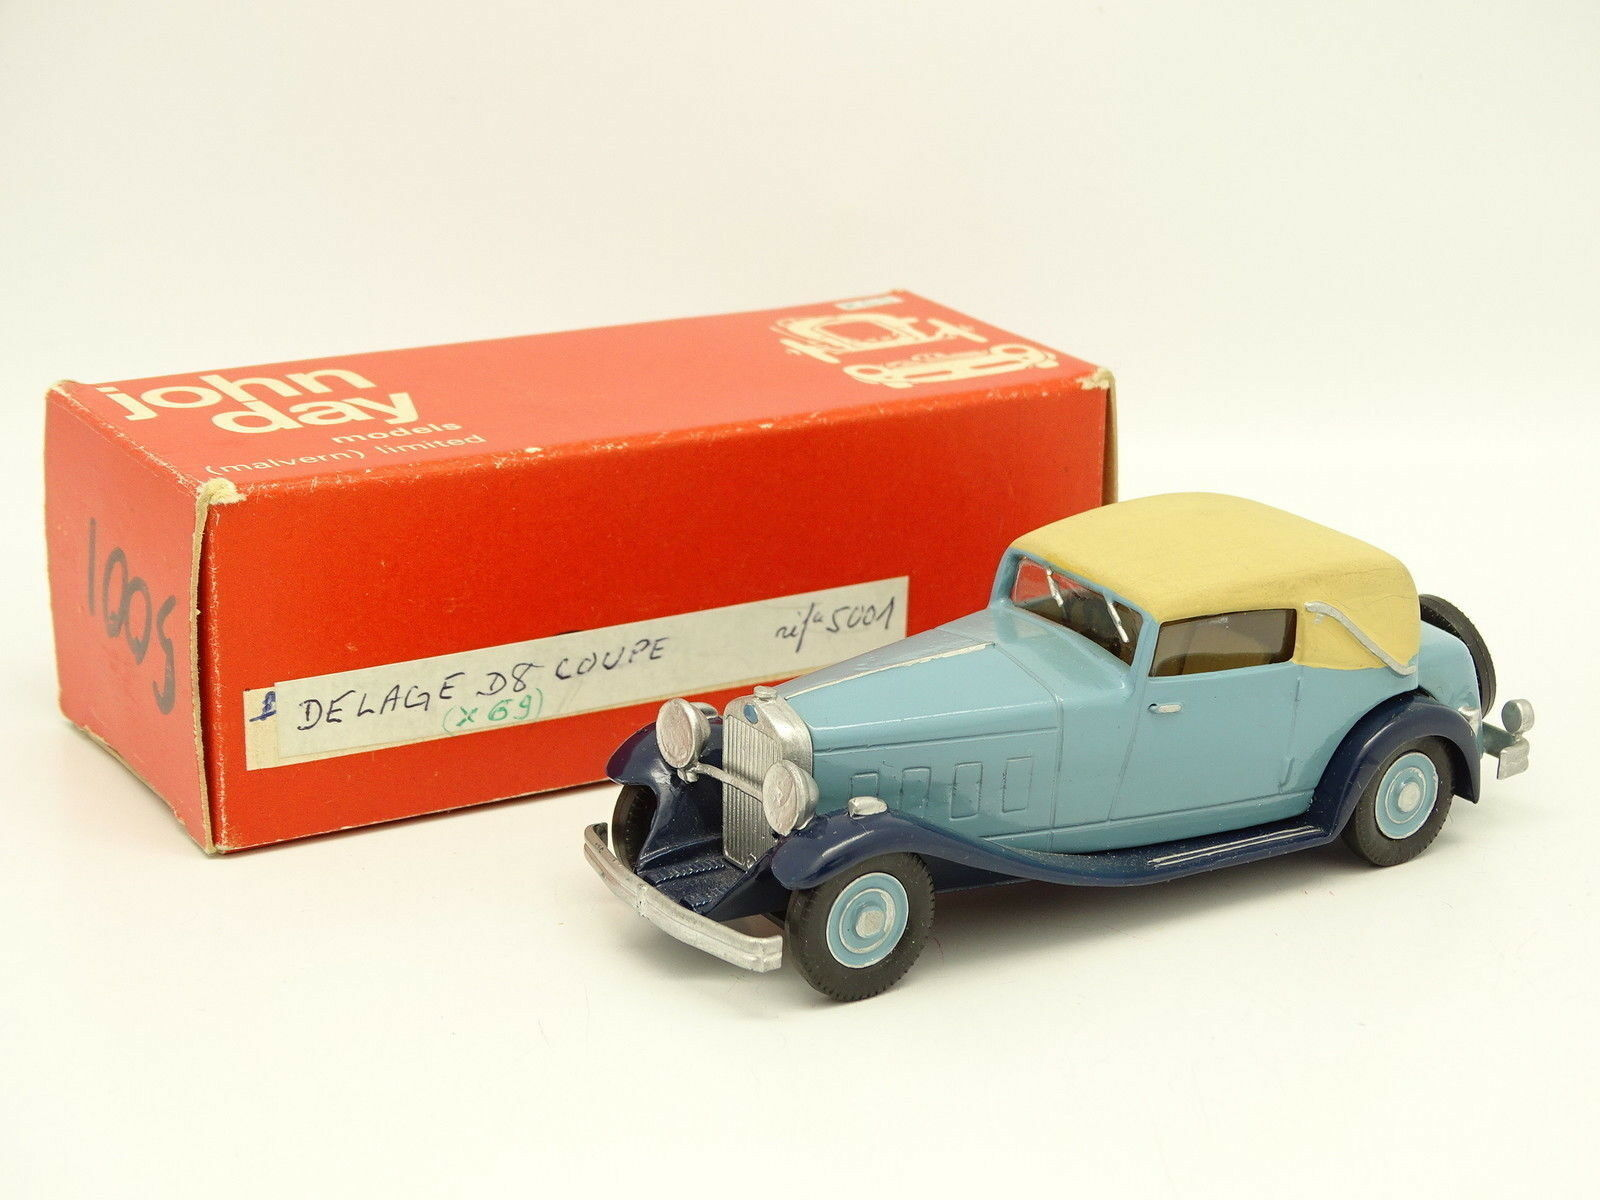 John Day Kit Built 1 43 Delage d8 Coupe bluee